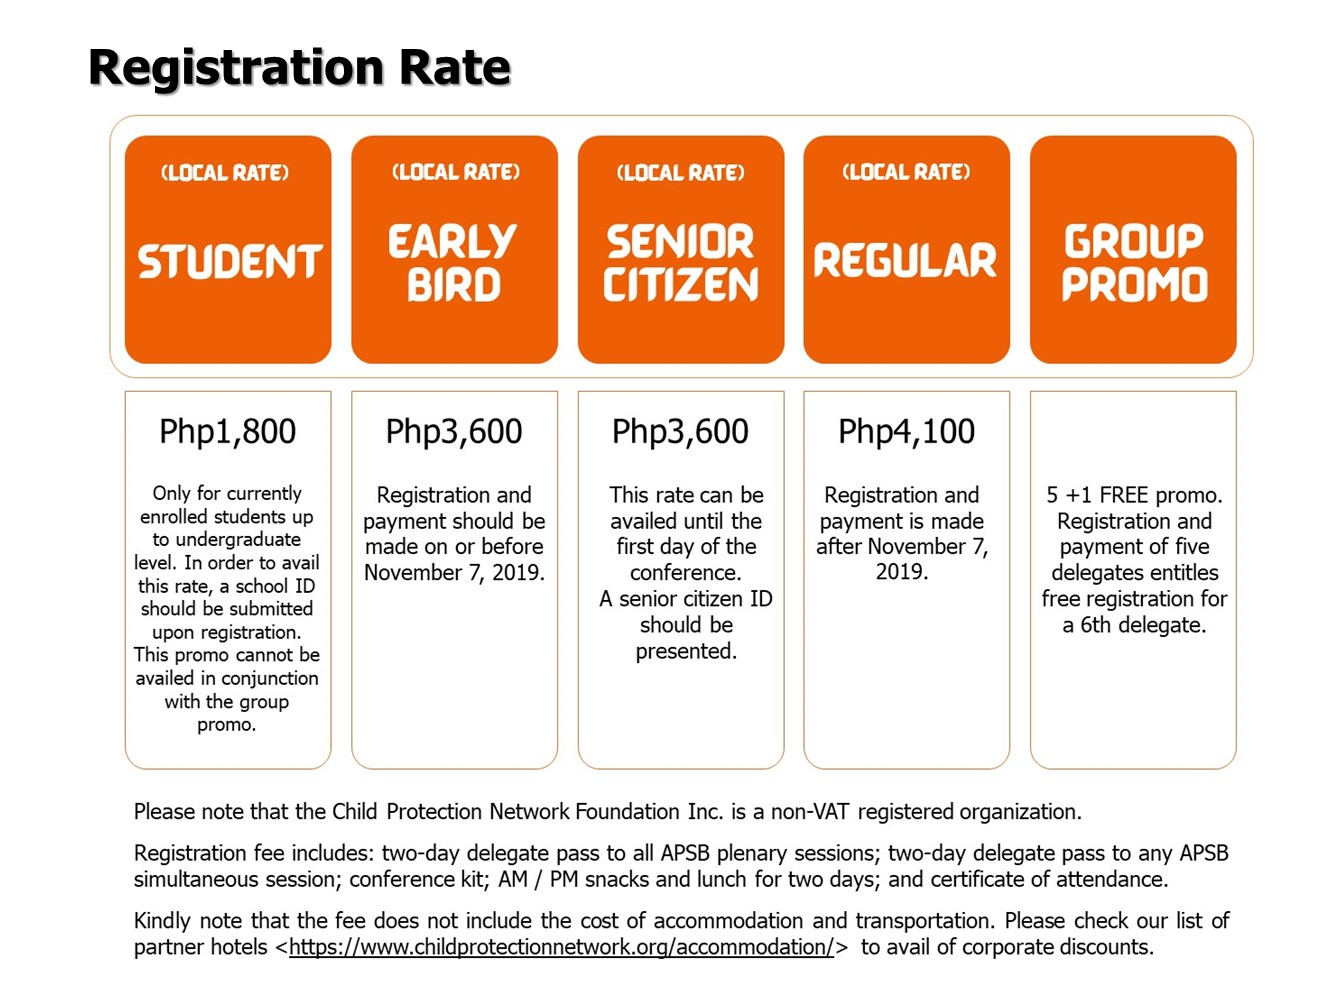 APSB 2019 Registration Rate